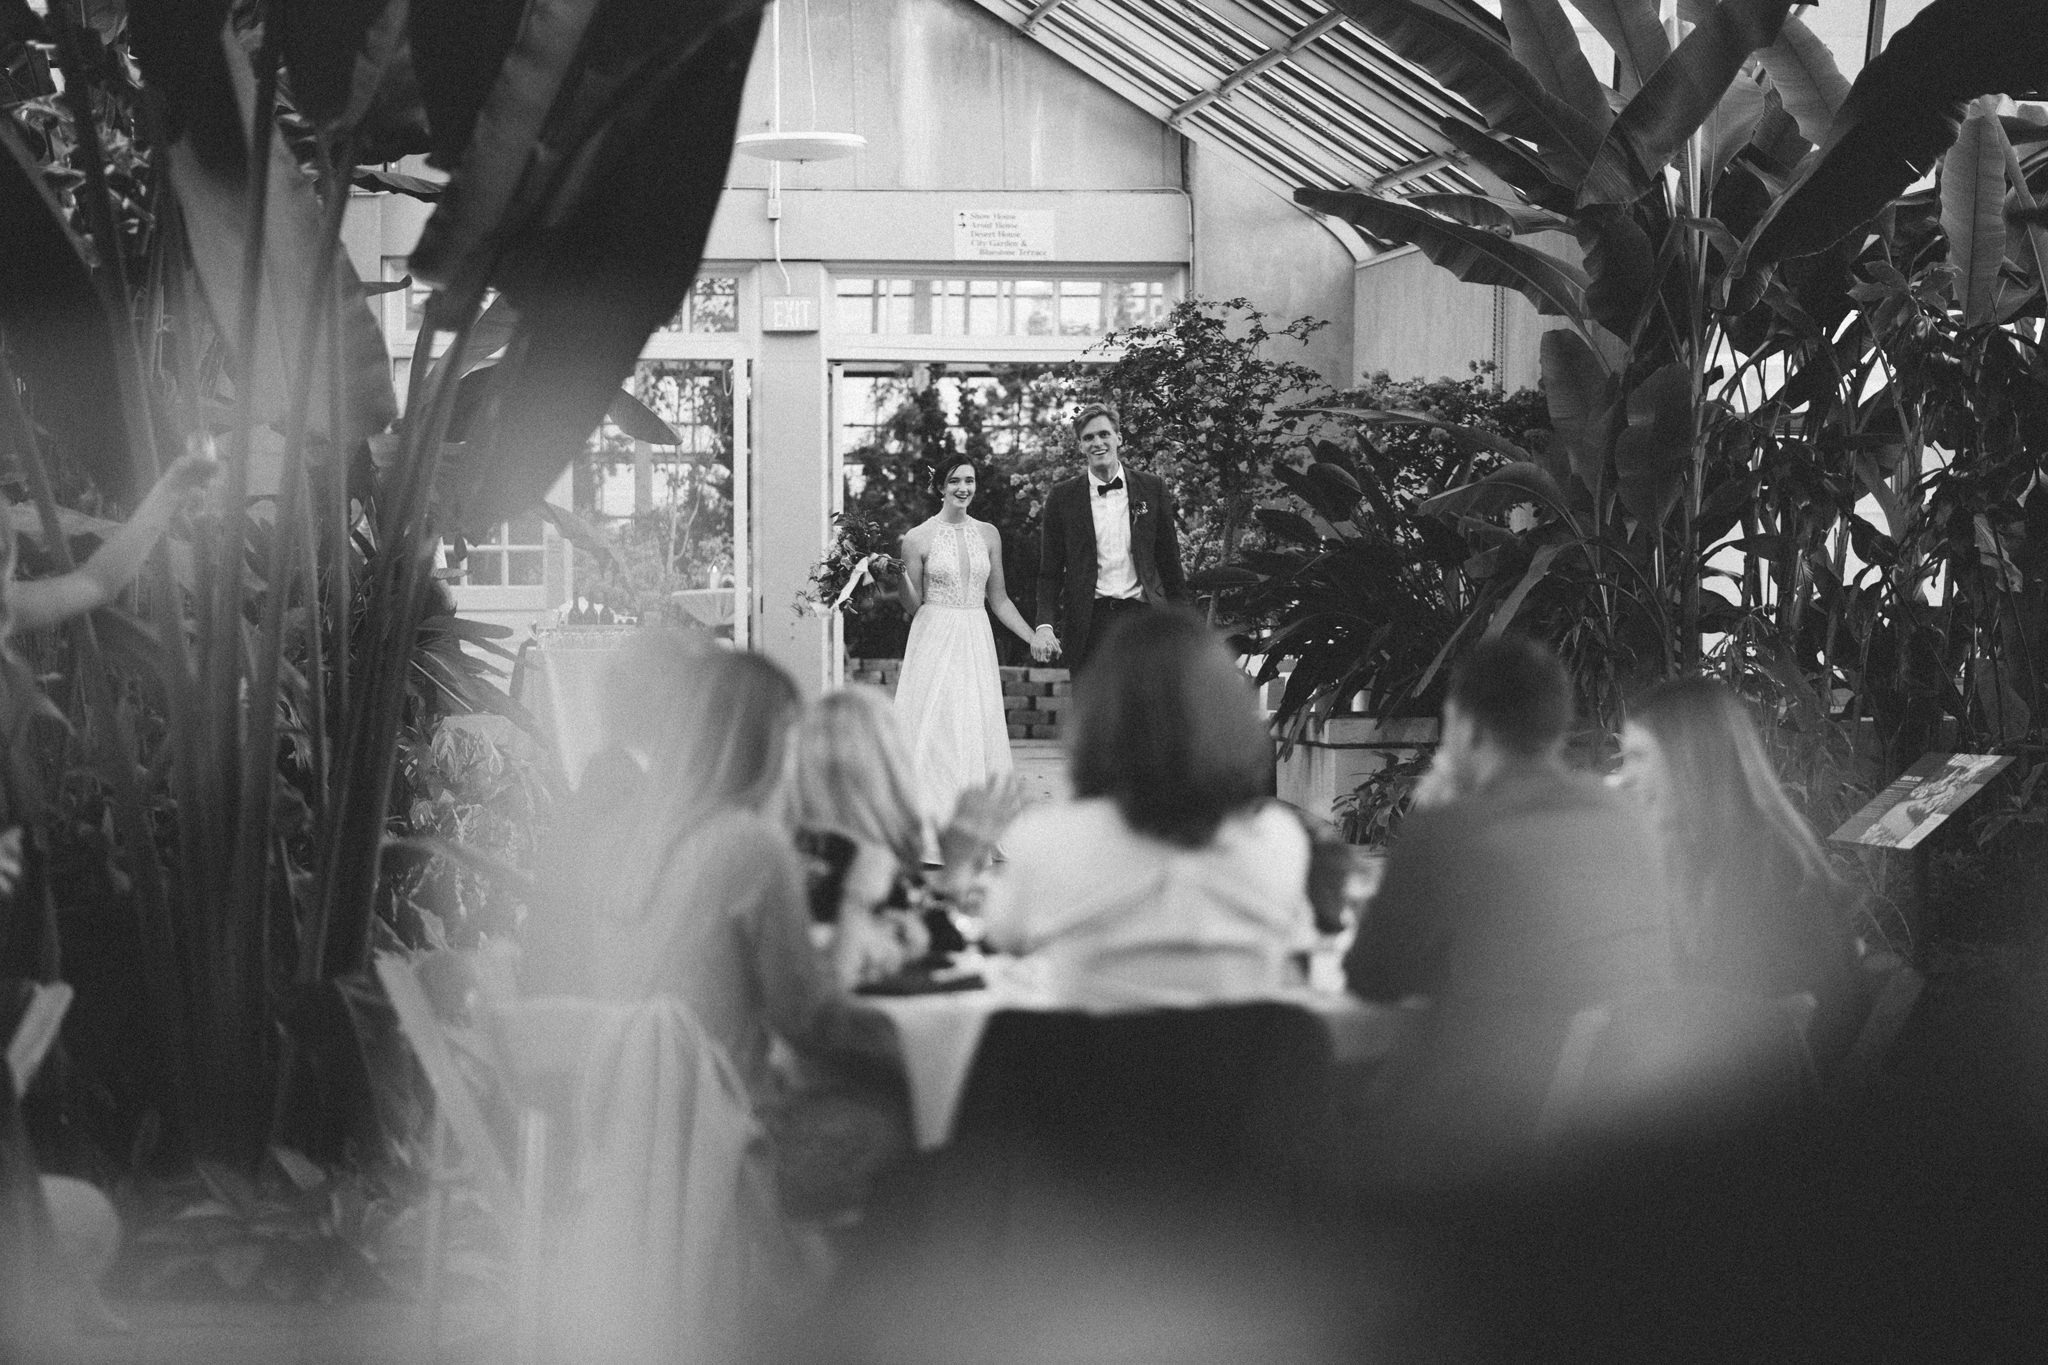 049-rempel-photography-chicago-wedding-inspiration-meredith-will-garfield-park-conservatory-painted-door-menguin-here-comes-the-bride-lulus-marcellos.jpg